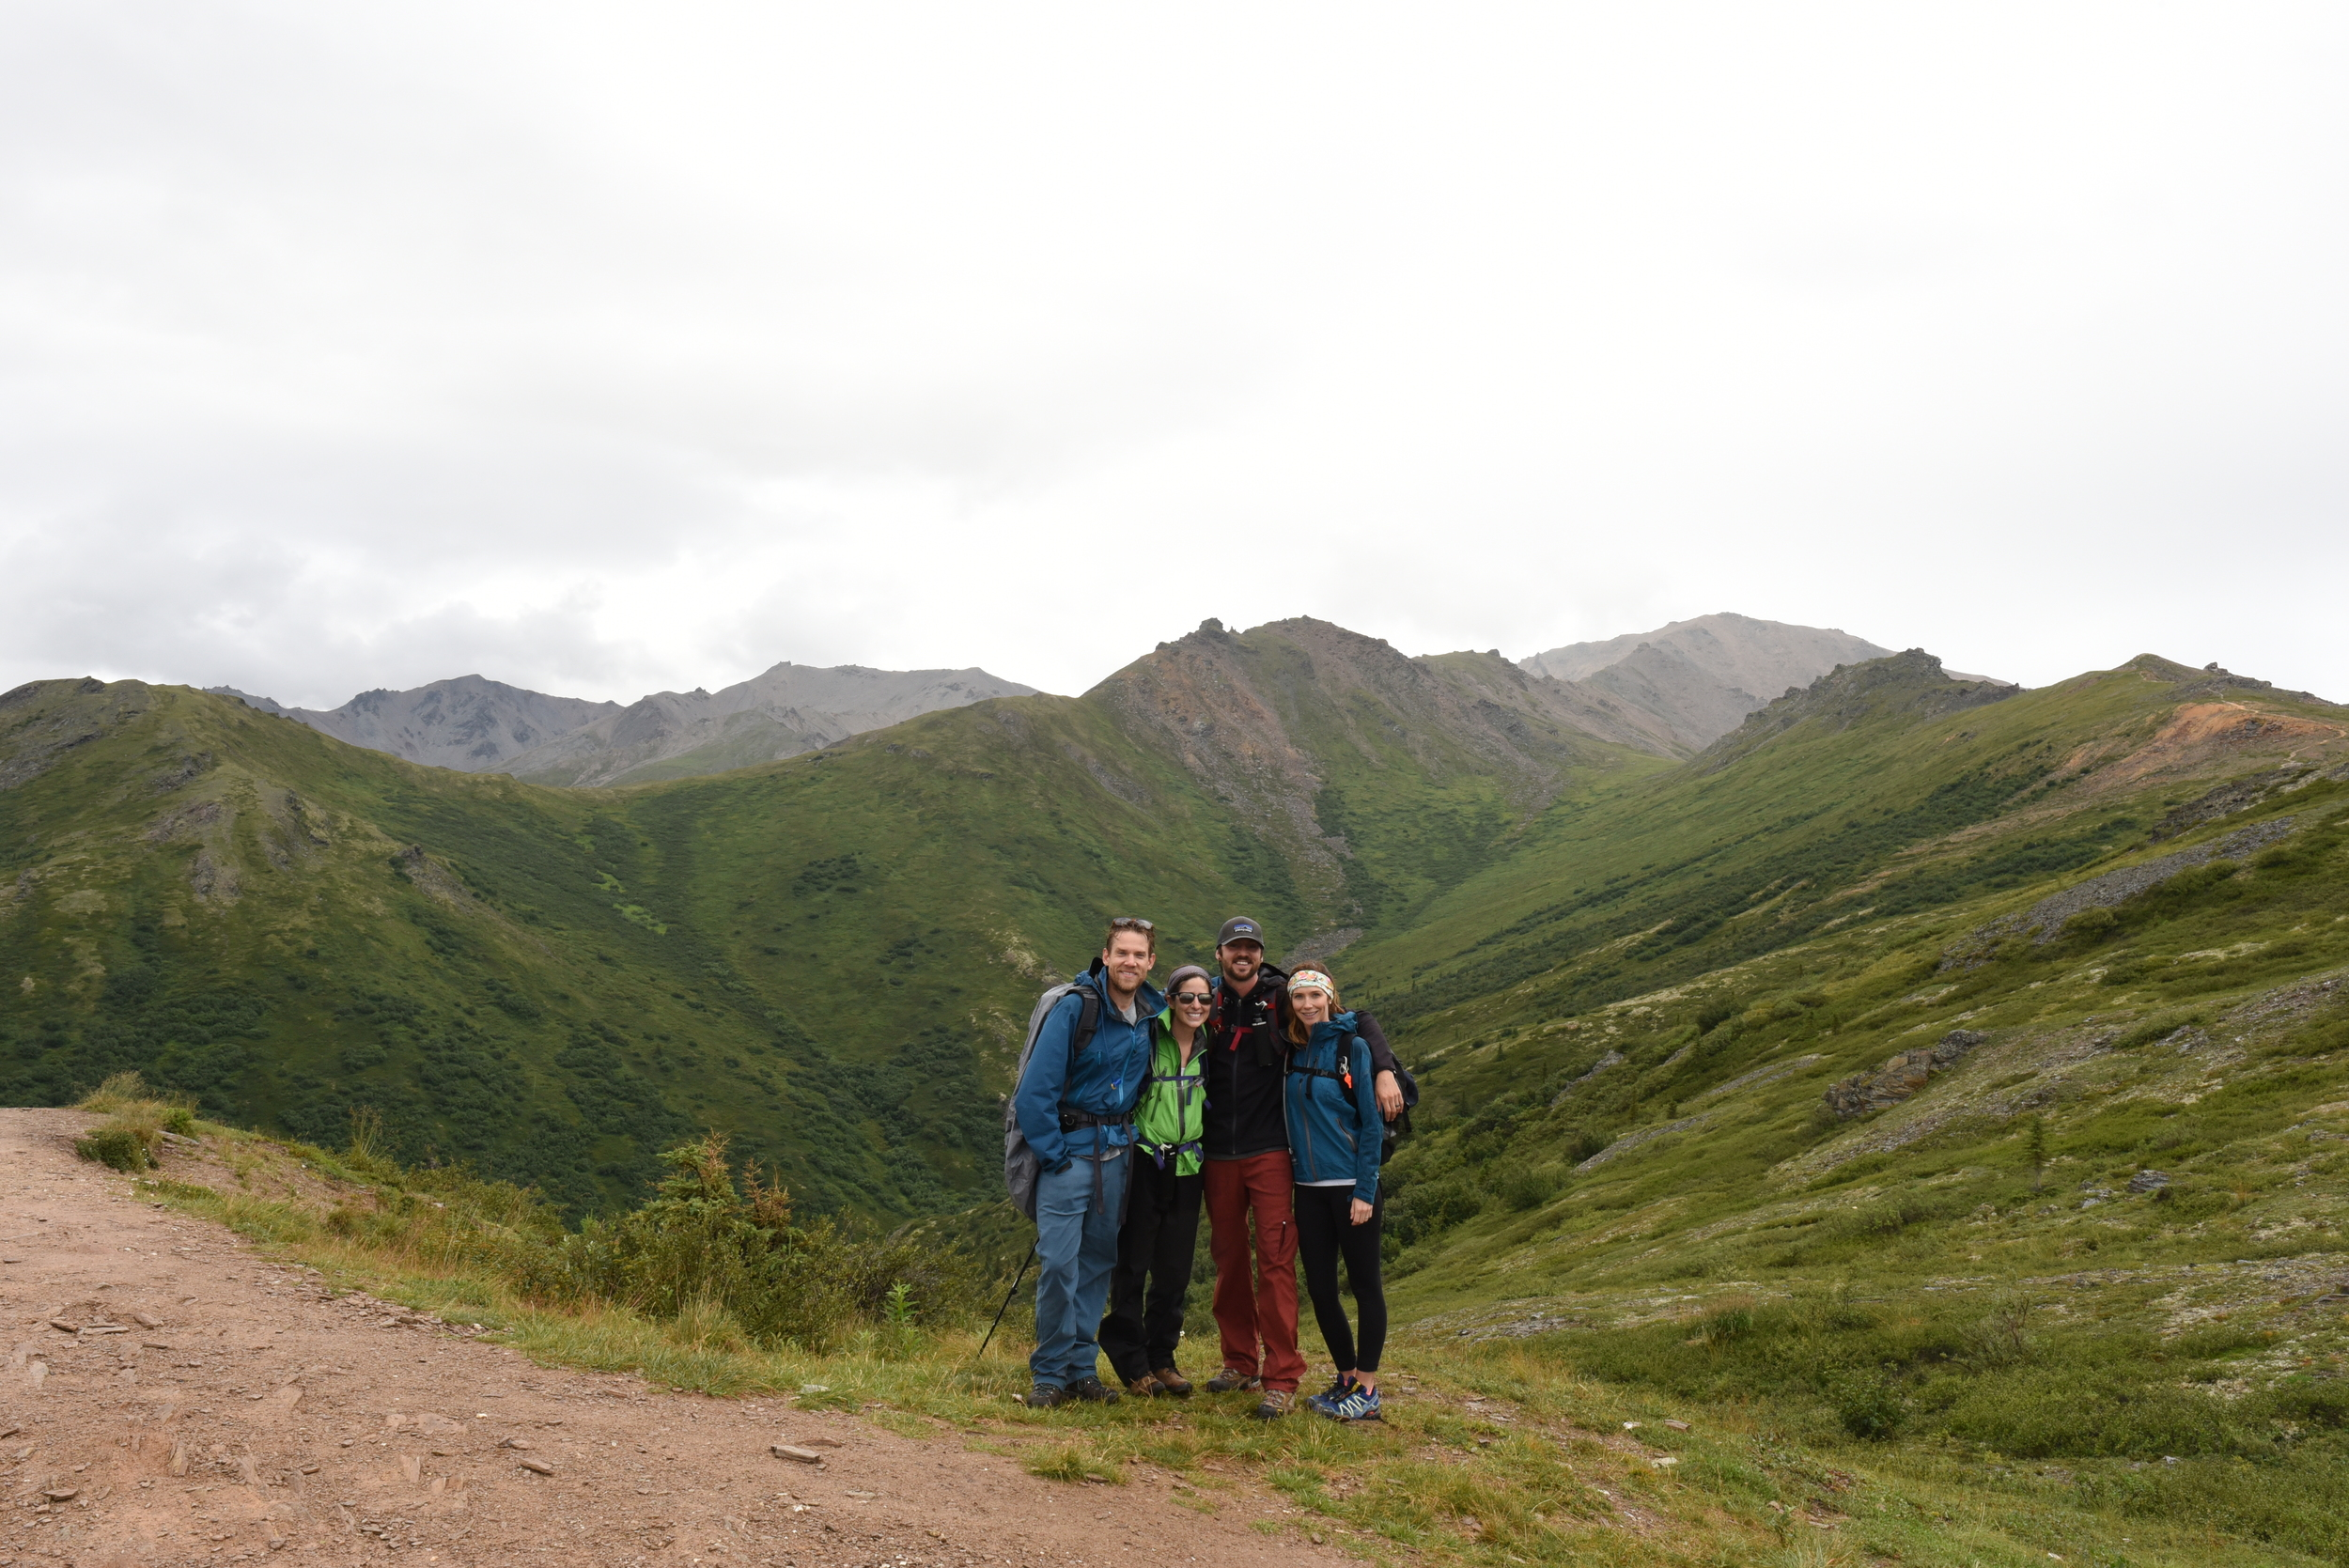 Hiking in Denali with our new friends David and Tracey